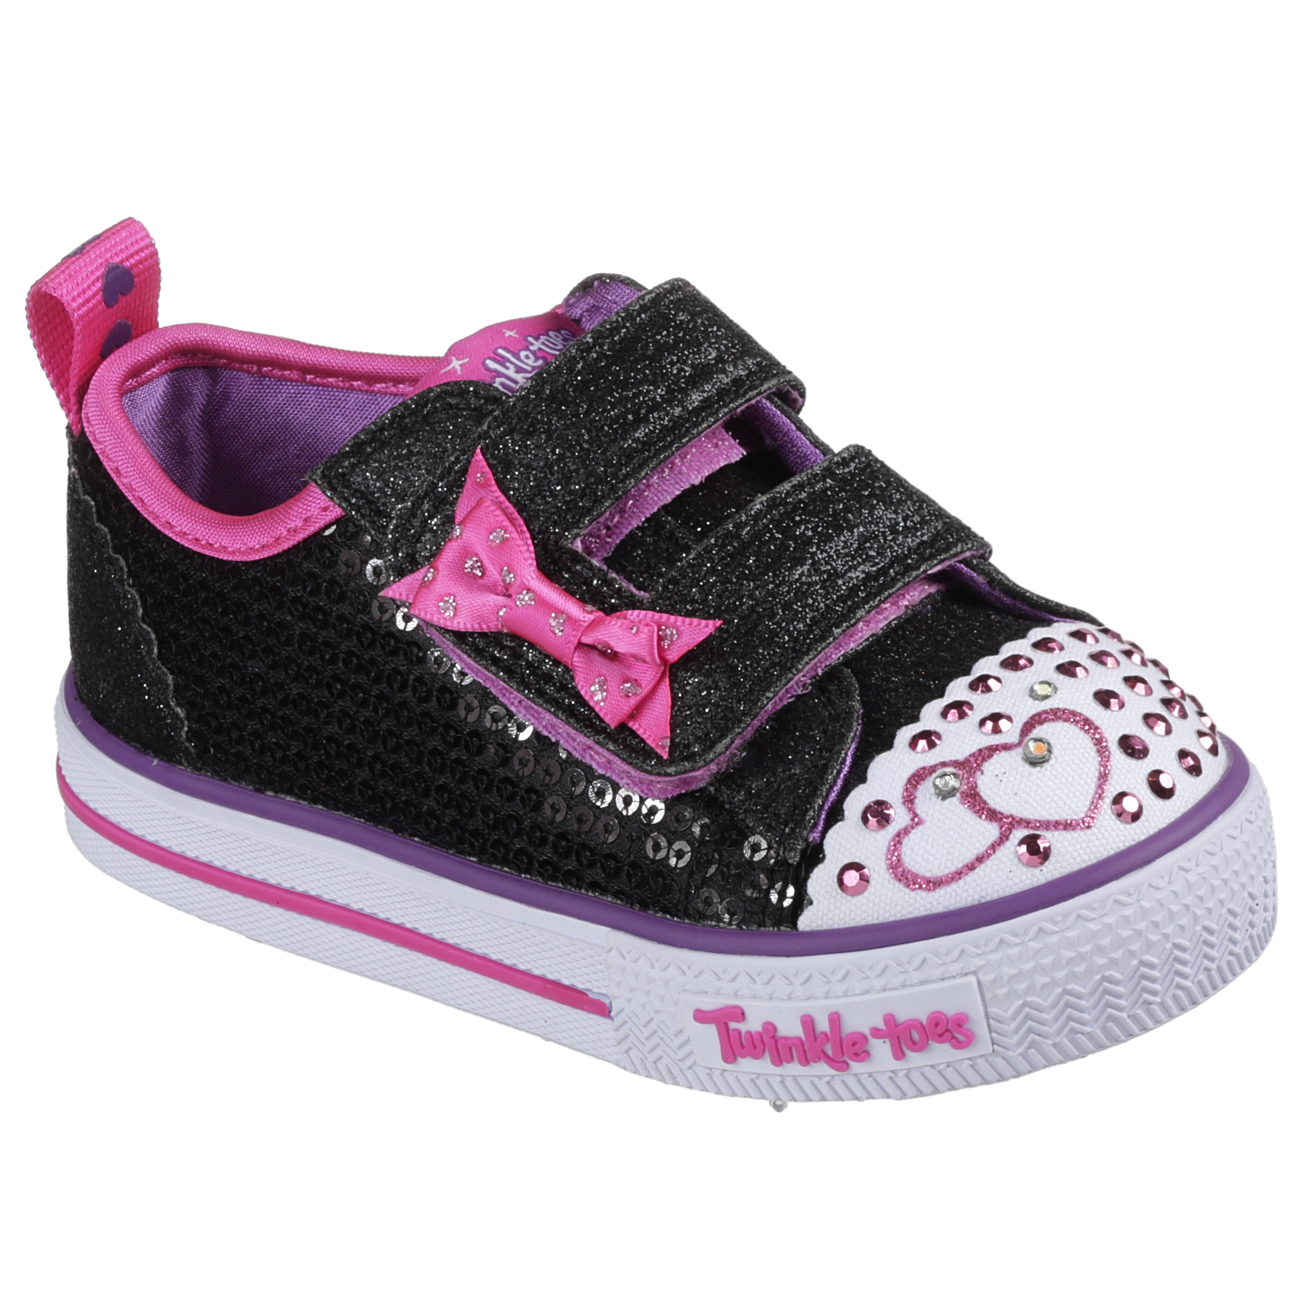 Kids Girls Infant Skechers Twinkle Toes Shuffles Itsy Bitsy